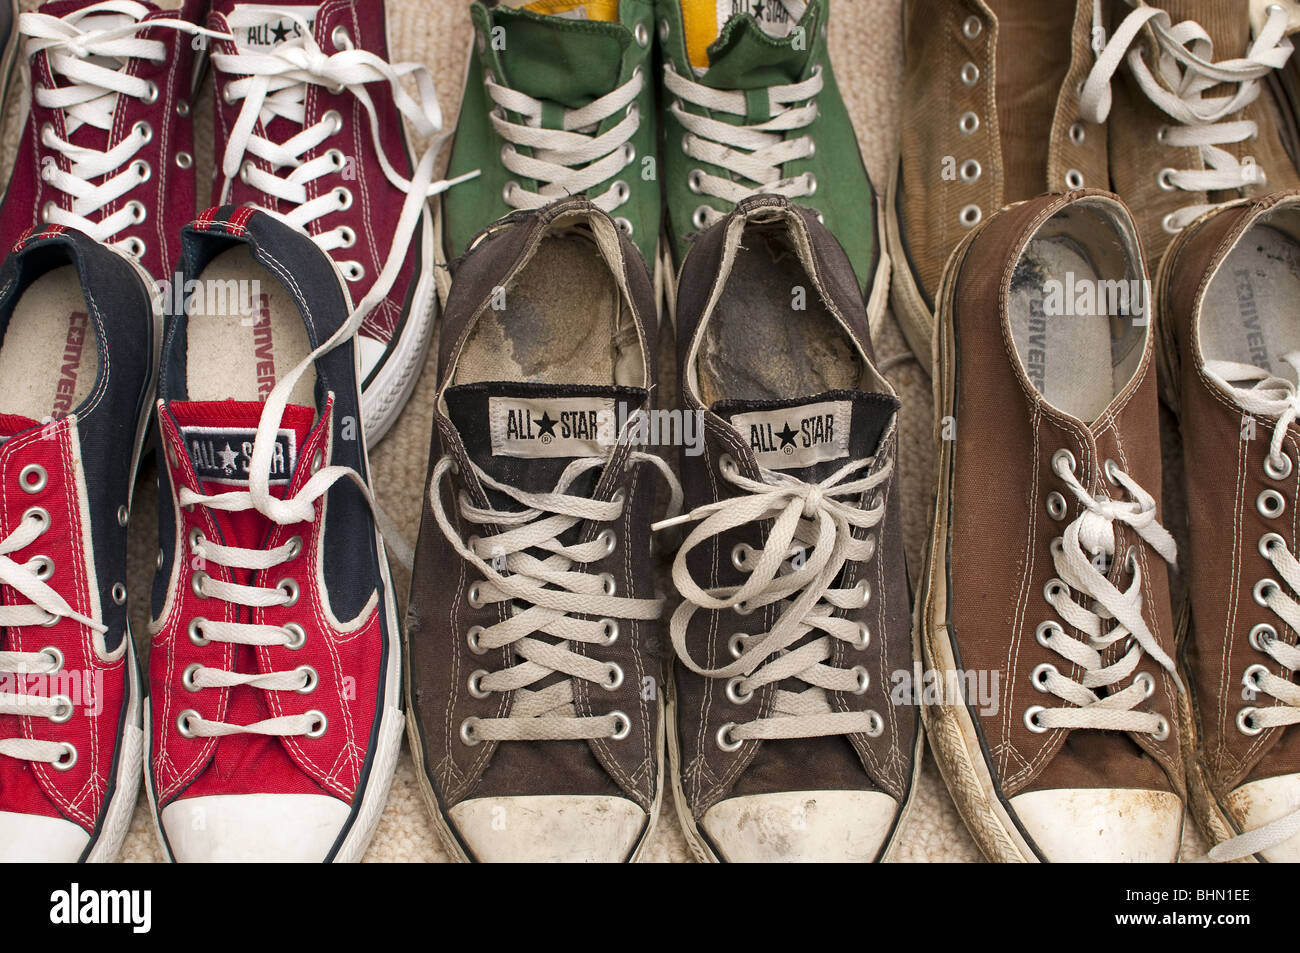 db9782dd5bf6 Converse All Star Trainers Stock Photos   Converse All Star Trainers ...